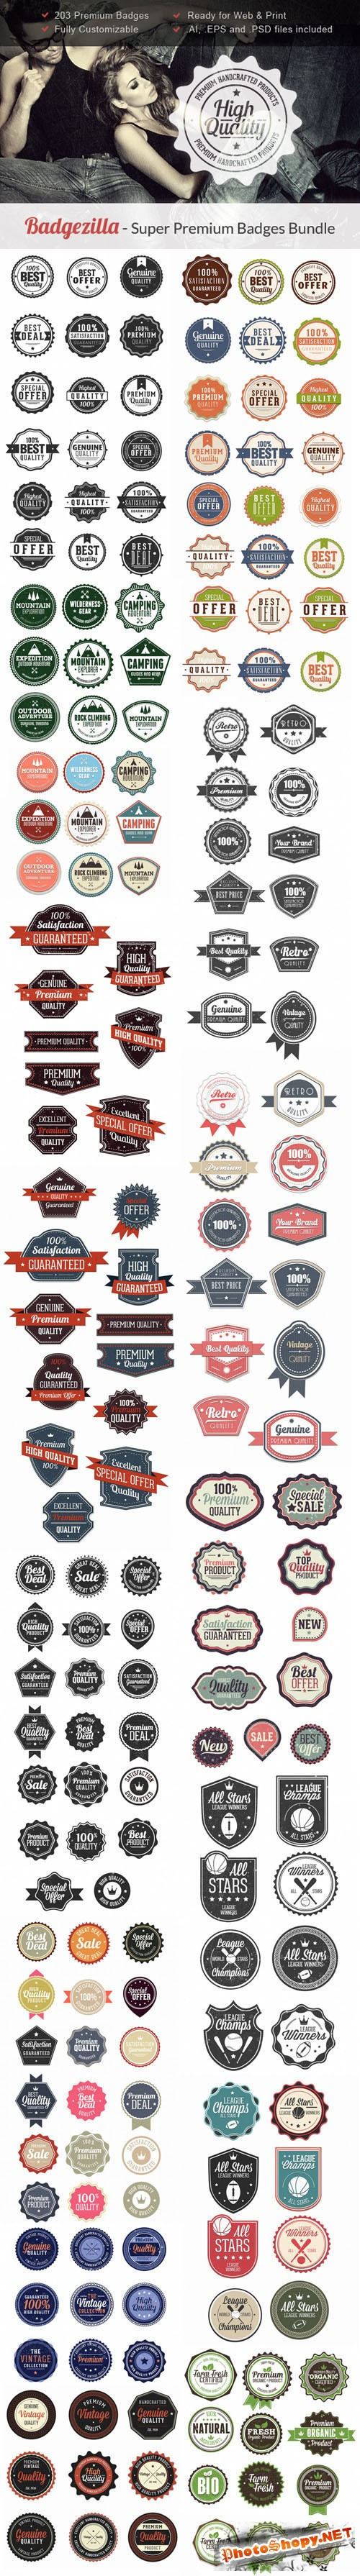 BadgeZilla The Super Premium Badges Bundle - InkyDeals